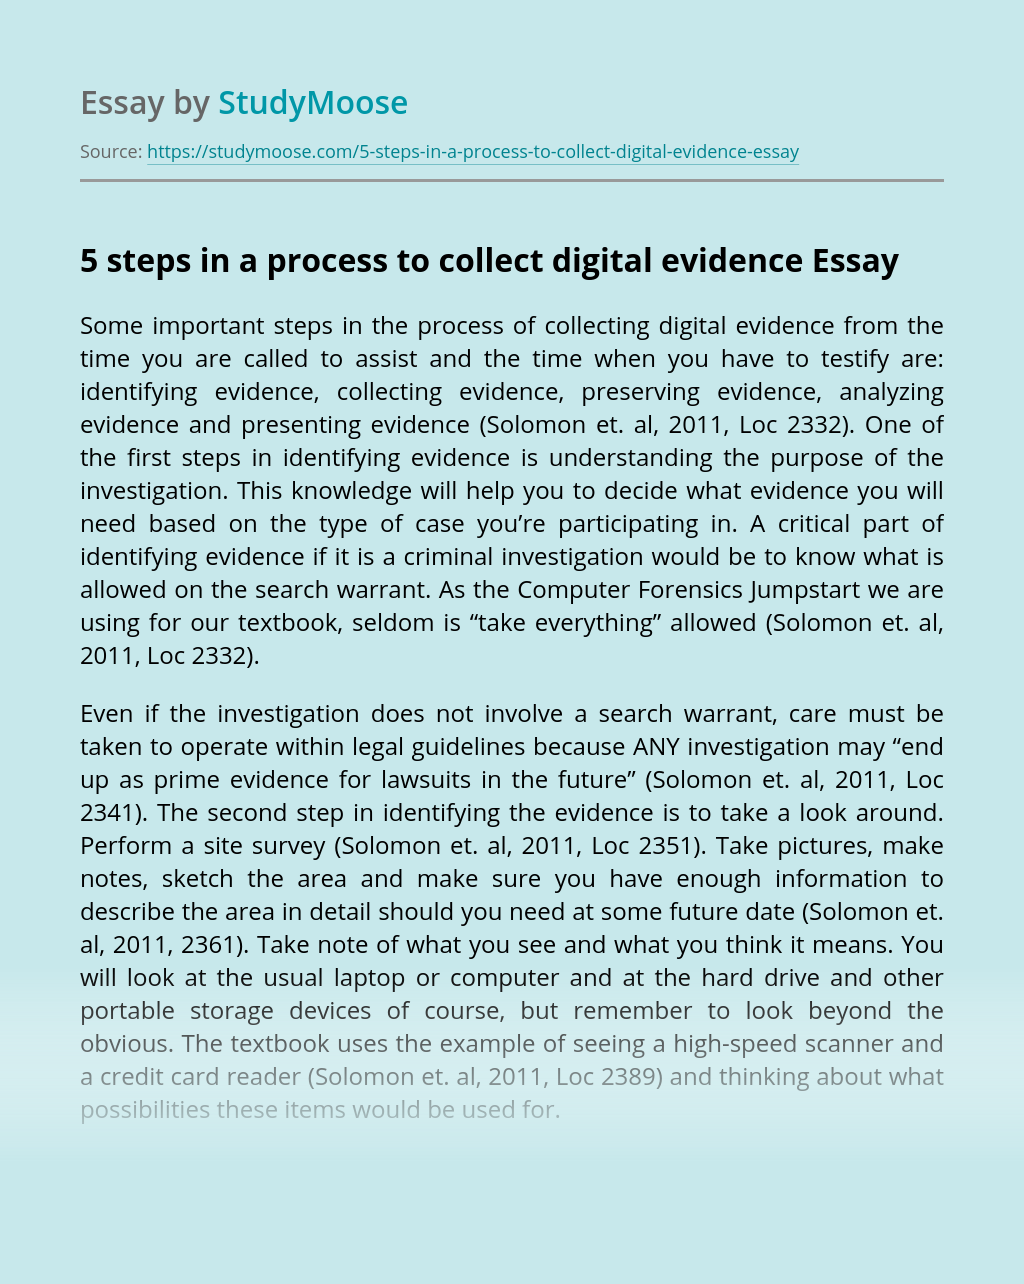 5 steps in a process to collect digital evidence